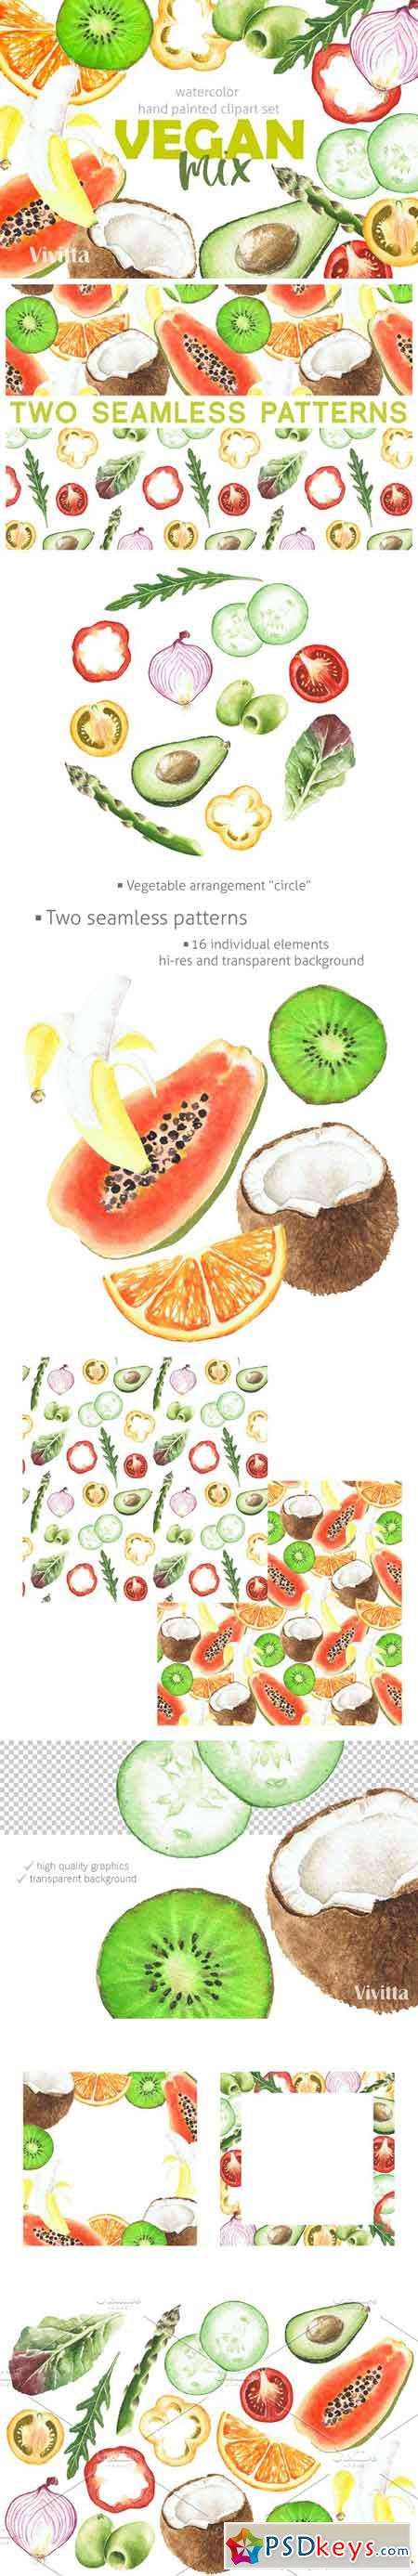 Watercolor clipart Vegan Mix summer 2581697